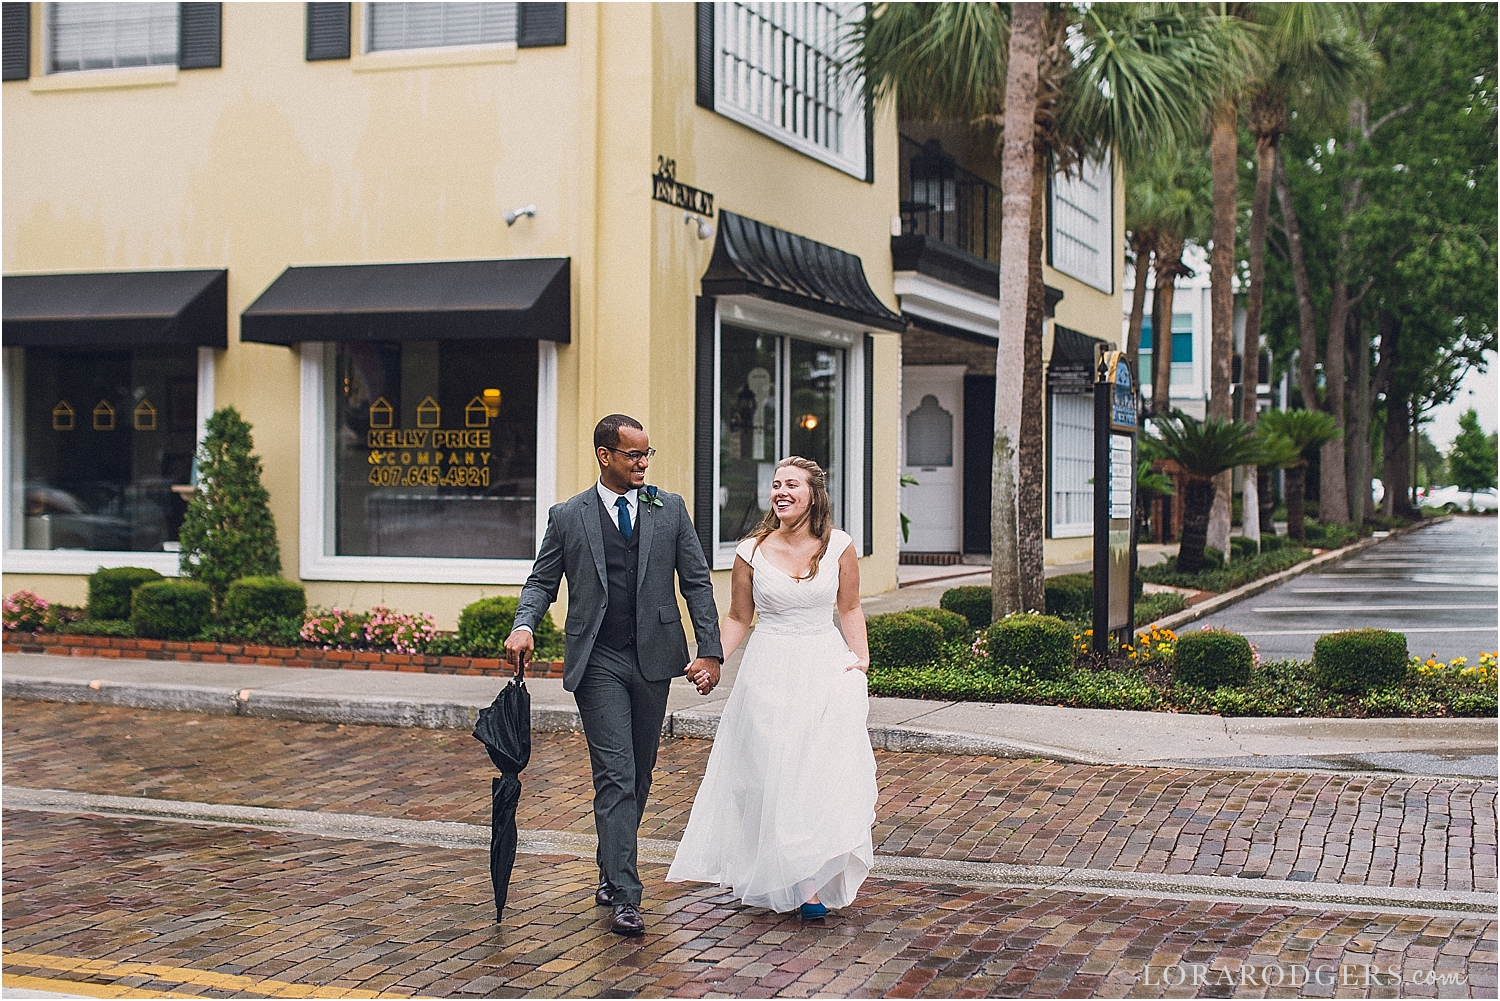 Winter Park Farmers Market Wedding Florida 78 Wedding Photographer Orlando Florida Lora Rodgers